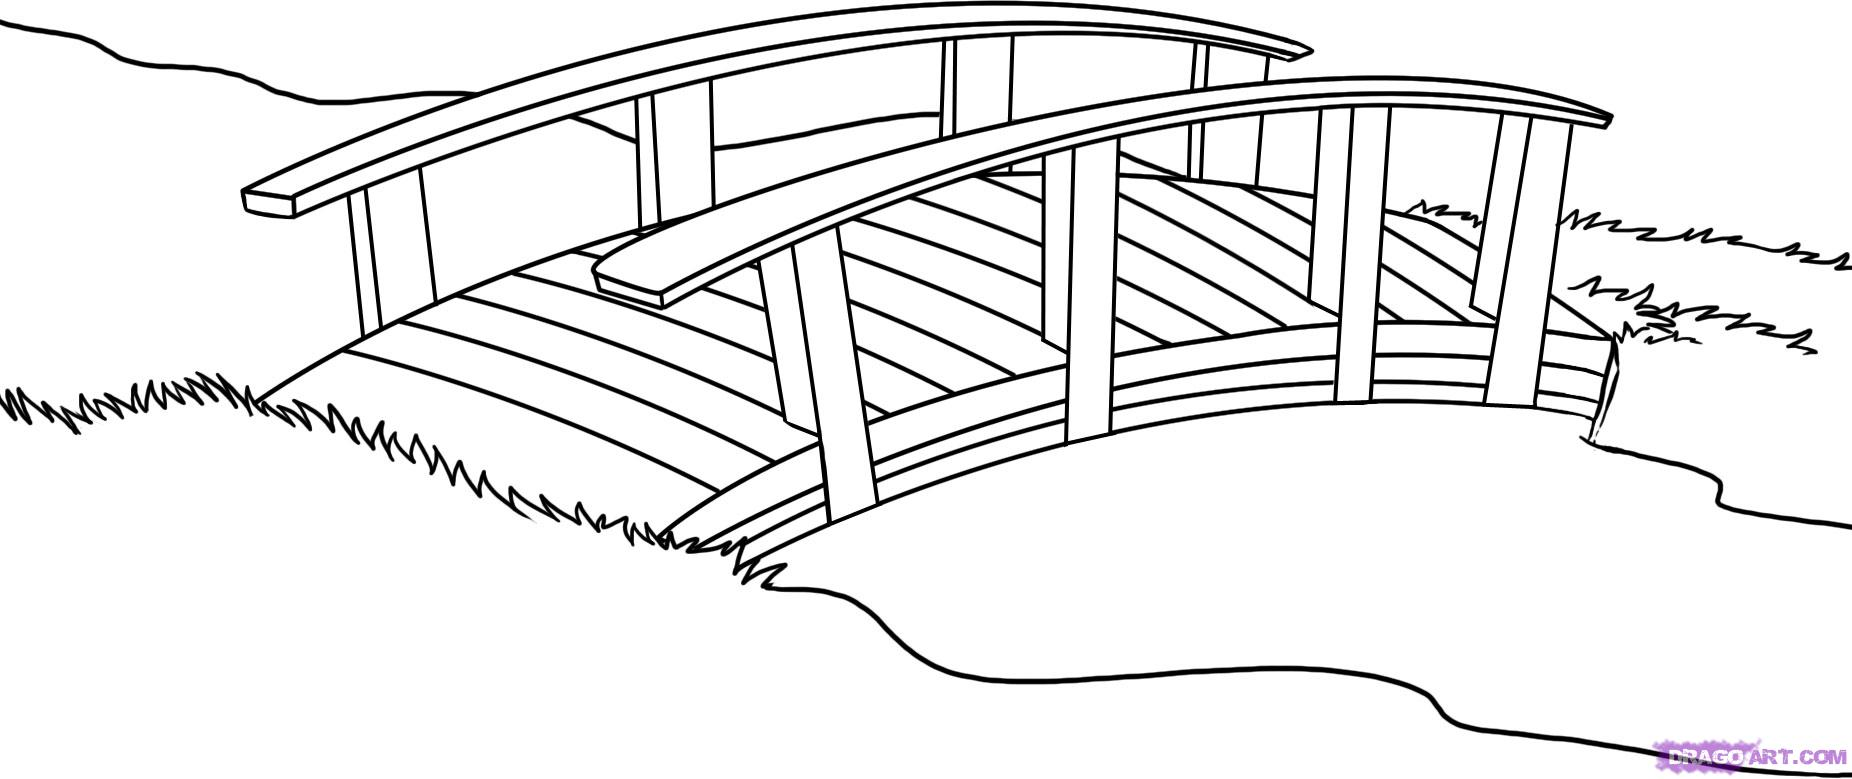 Drawn bridge Image bridge of art clip